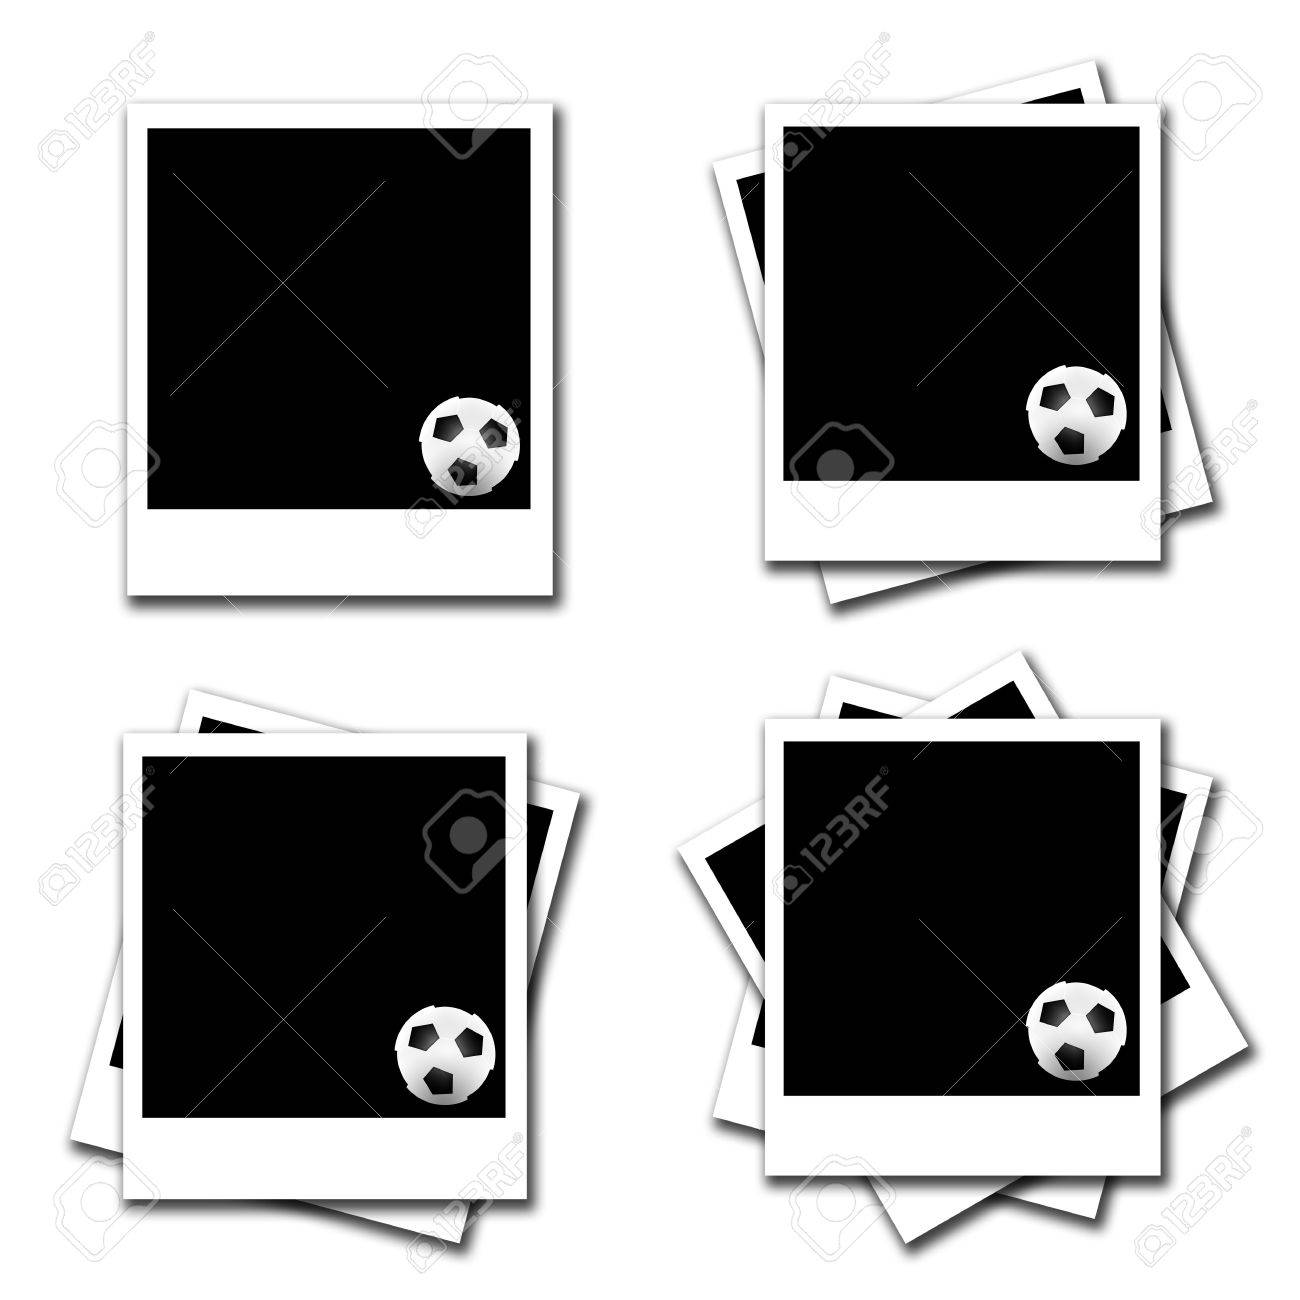 Blank Photo Frames With Soccer Frames On White Background Stock ...